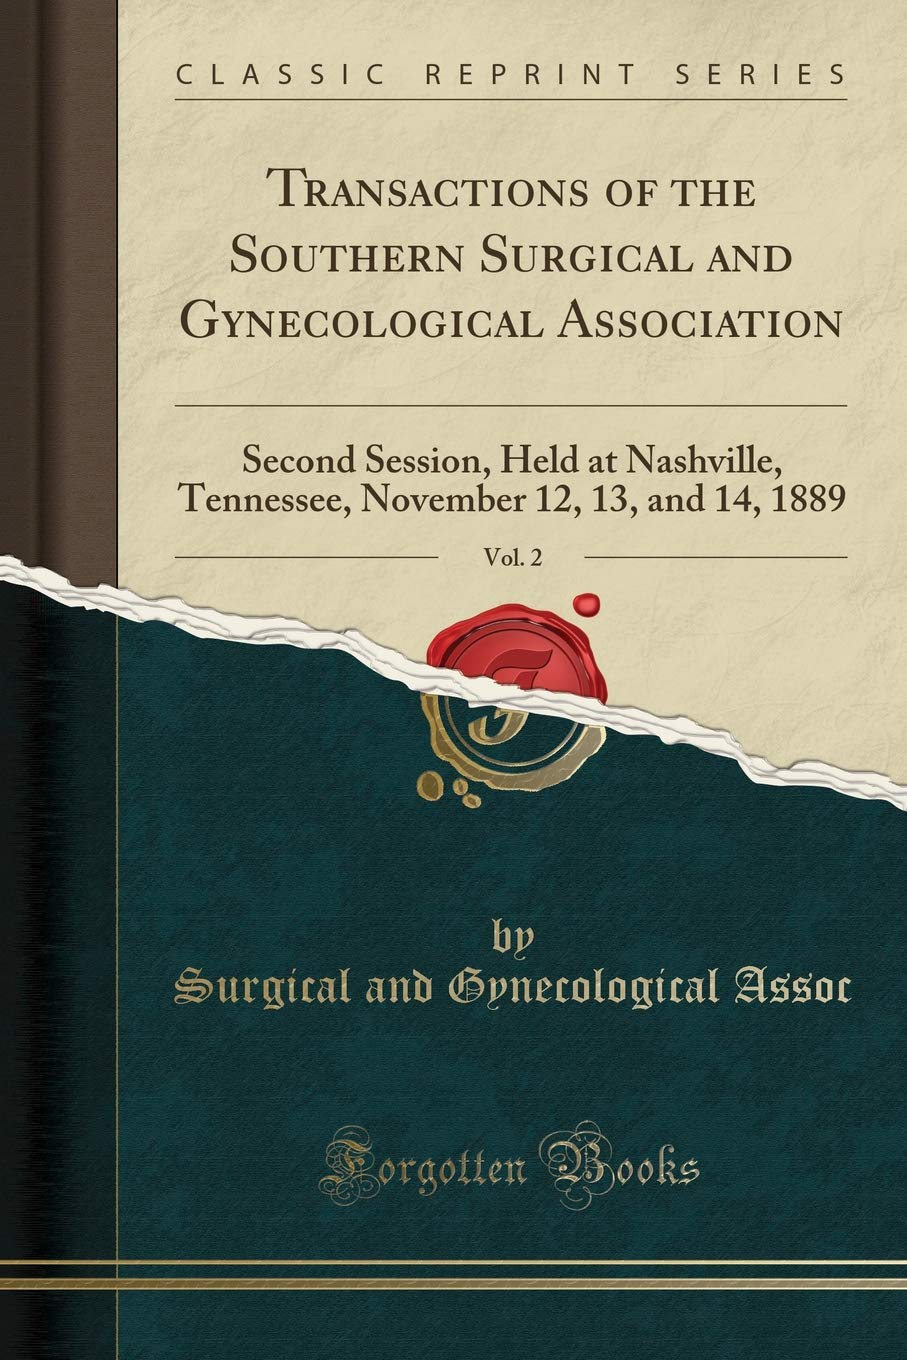 Transactions of the Southern Surgical and Gynecological Association, Vol. 2: Second Session, Held at Nashville, Tennessee, November 12, 13, and 14, 1889 (Classic Reprint) by Forgotten Books